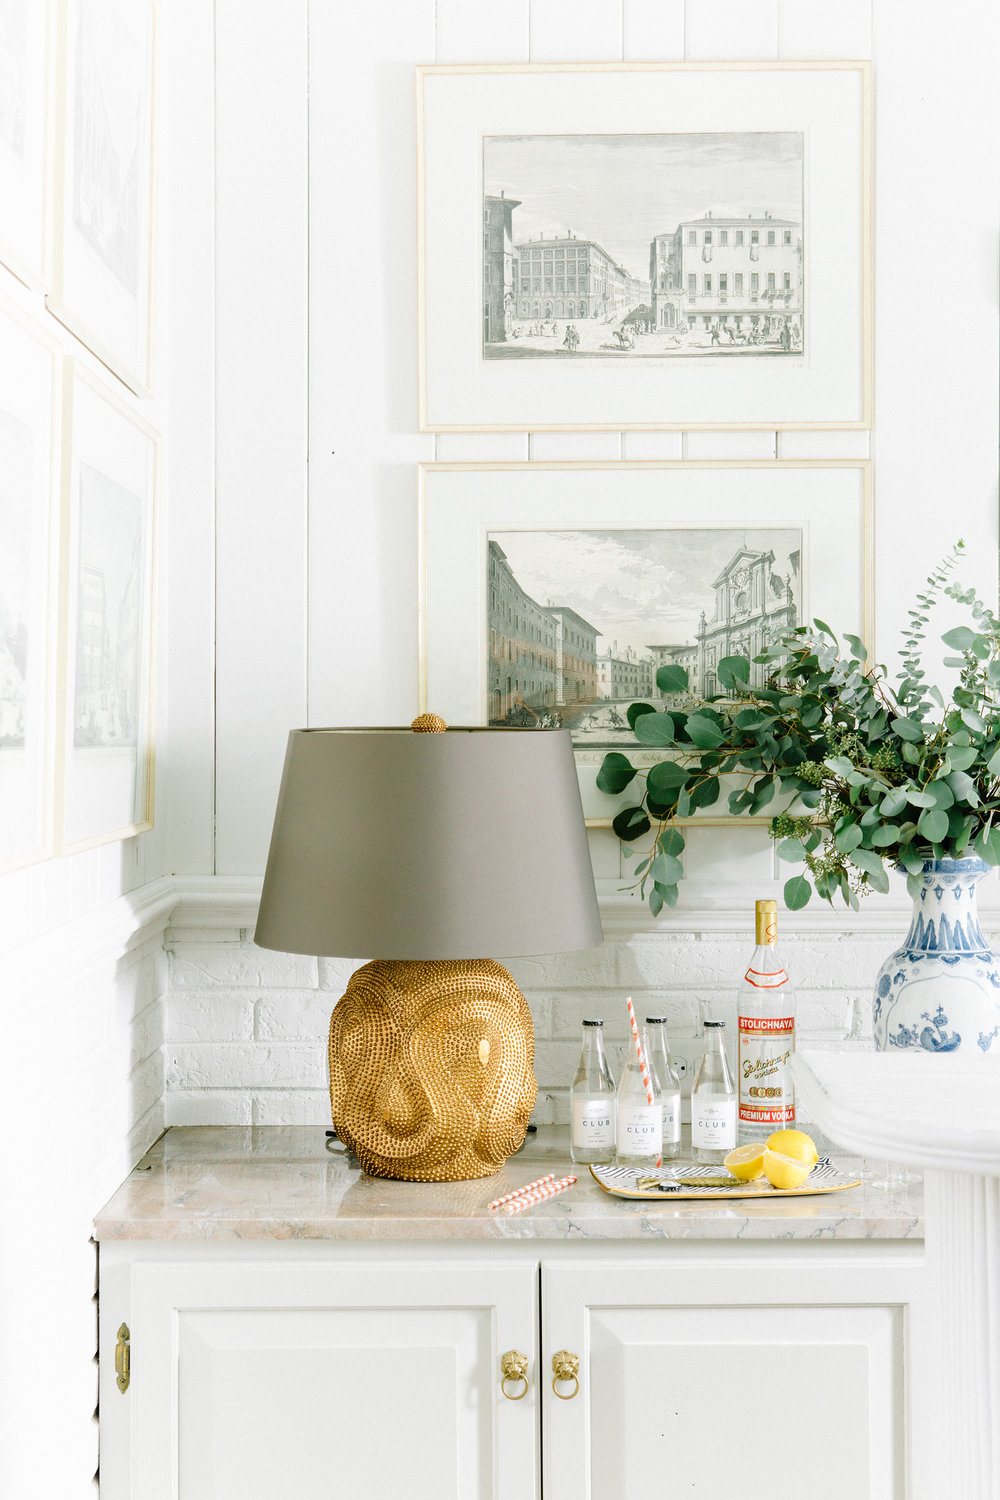 photo by:  Leslee Mitchell  -  arteriors lamp via lamps plus